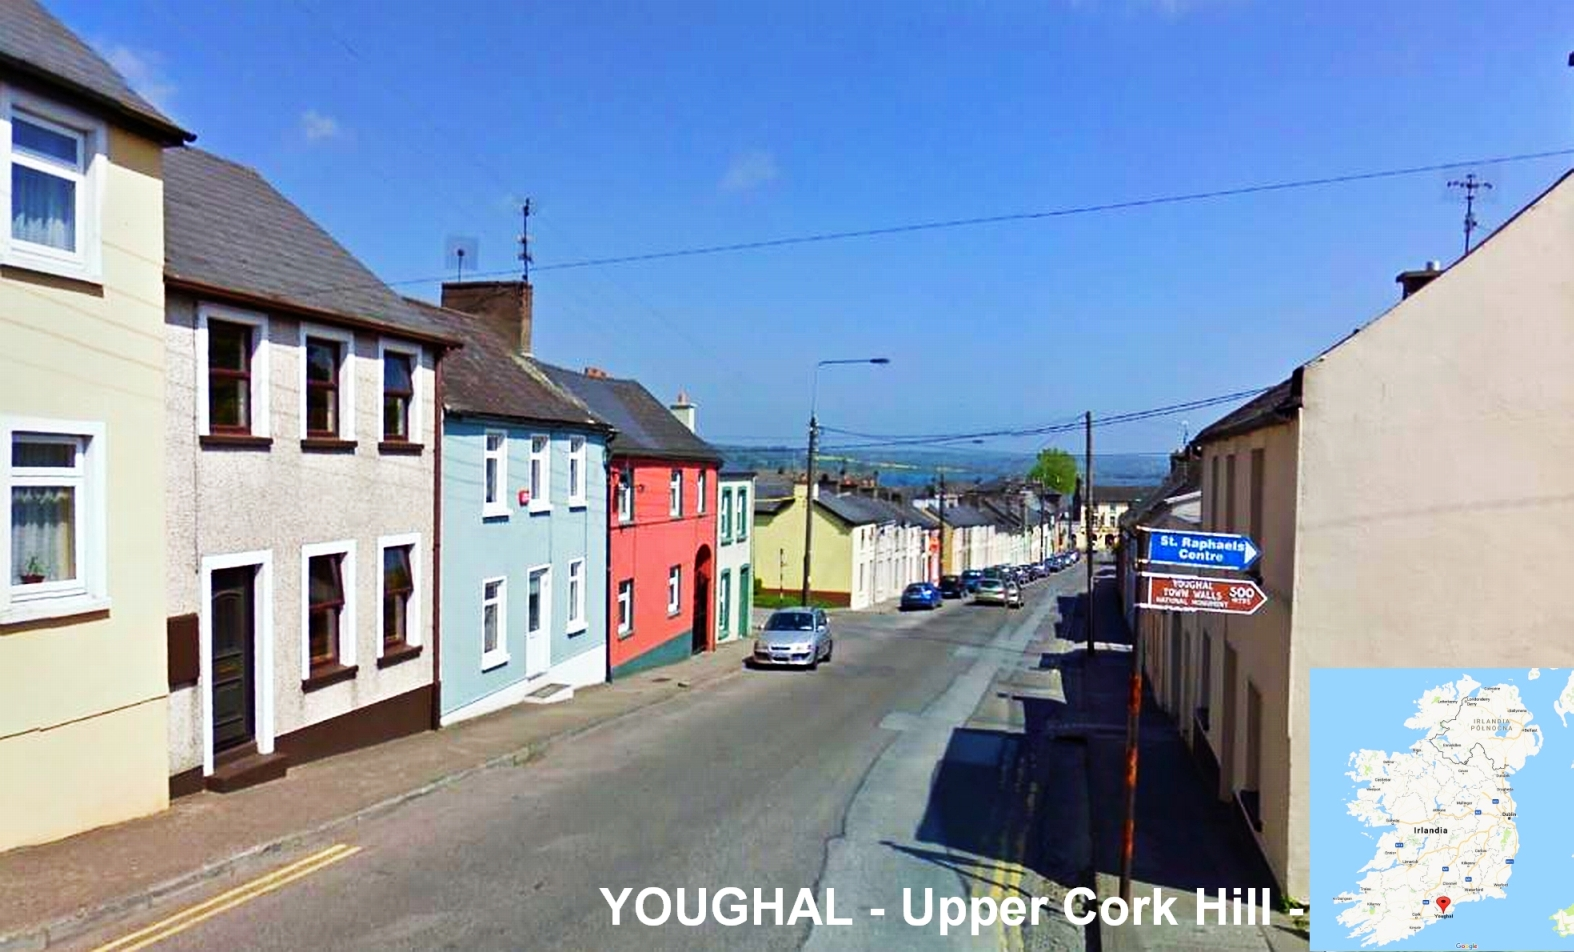 Youghal Upper Cork Hill